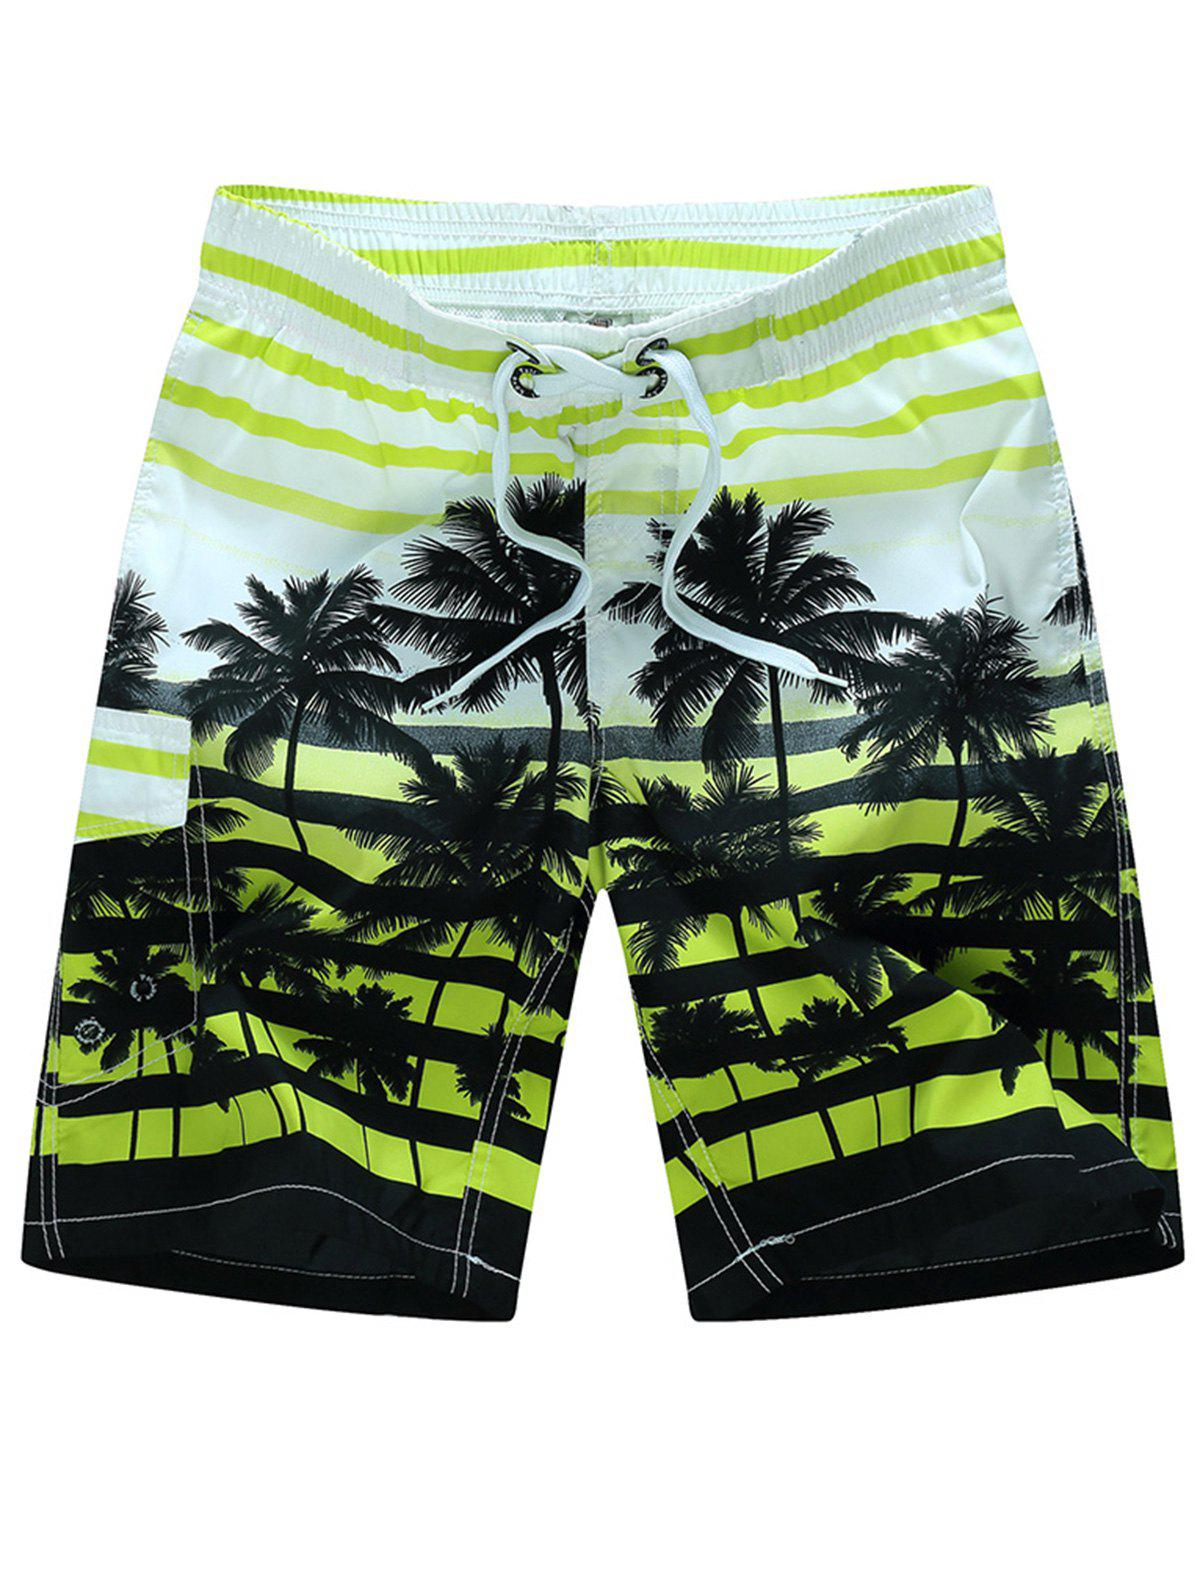 Plam Tree Striped Hawaiian Shorts - GRASS GREEN 3XL